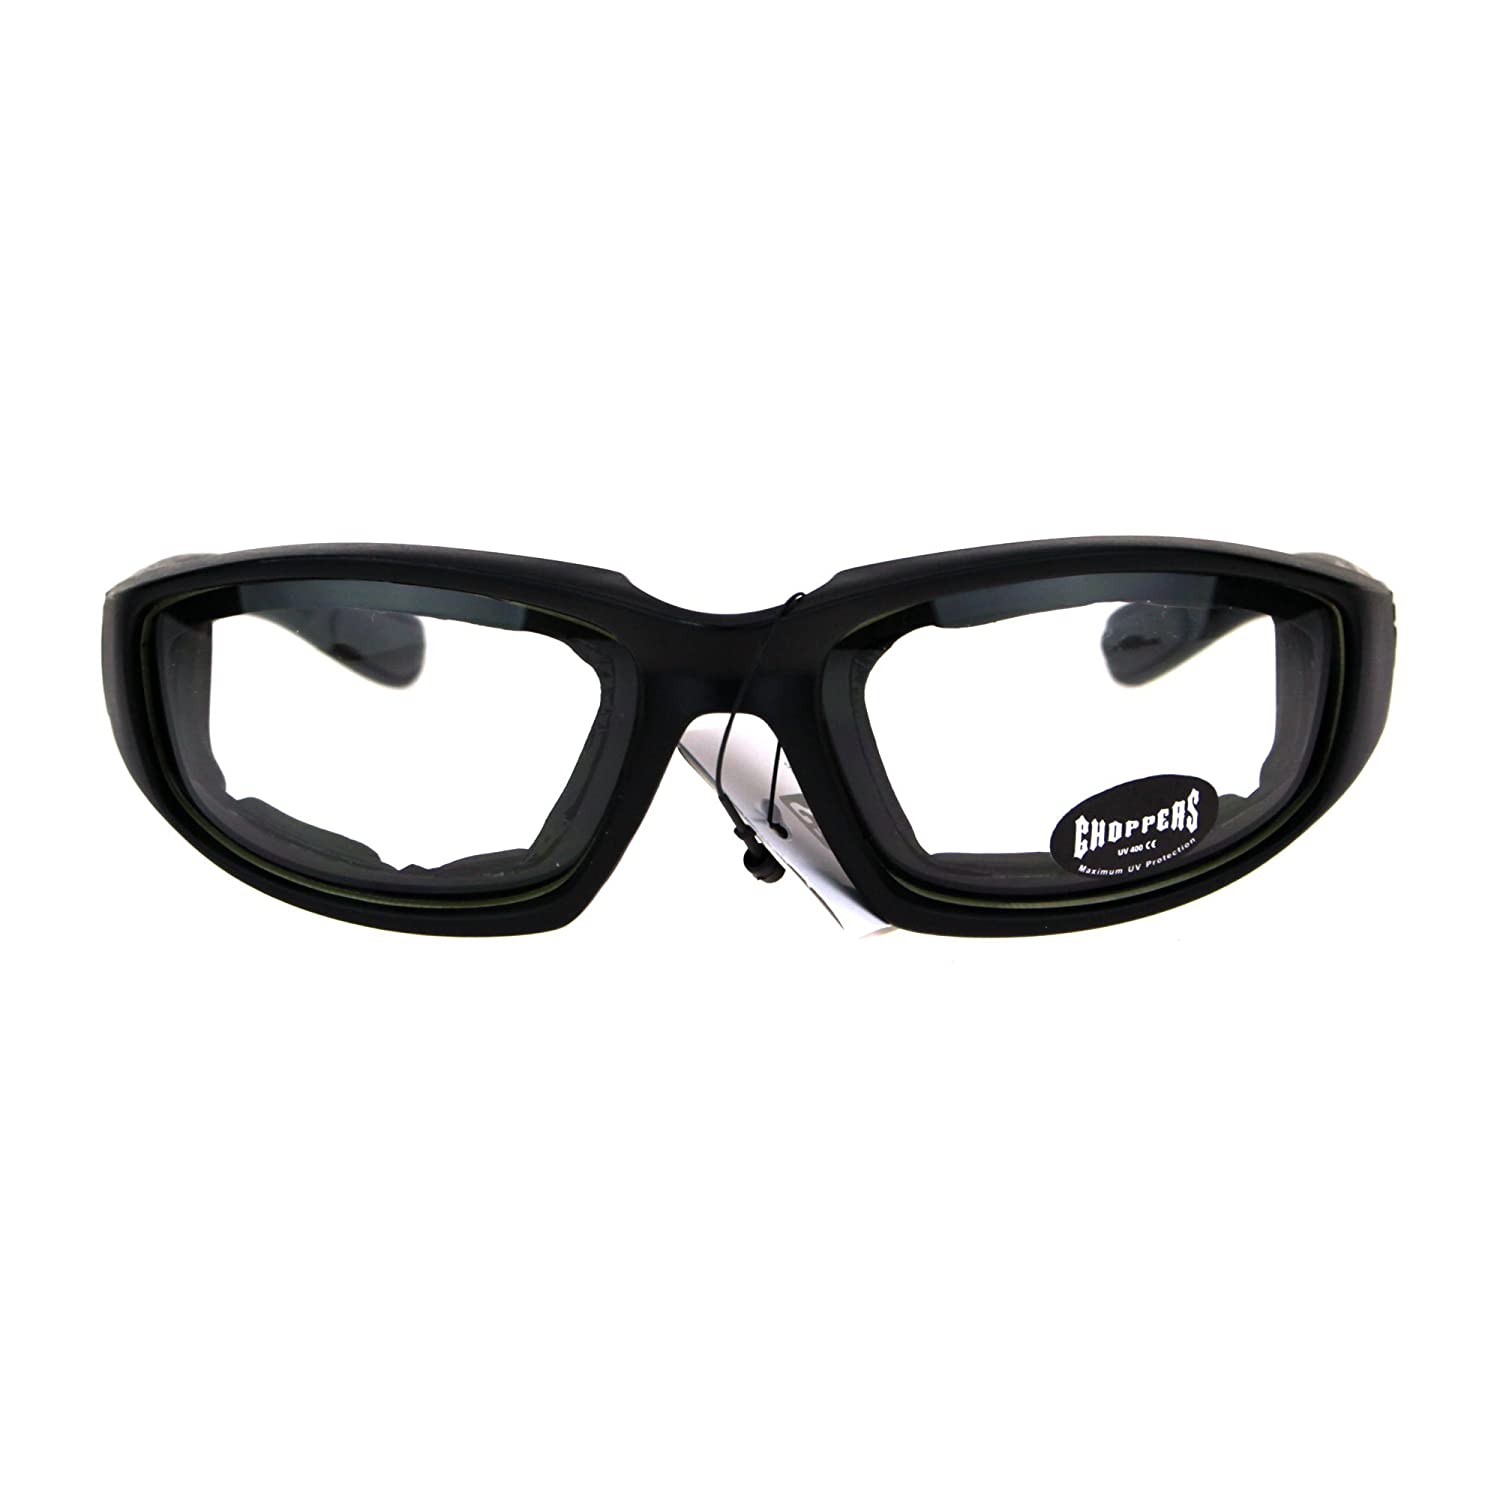 161fd07695f Amazon.com  Choppers Foam Padded Biker Wind Breaker Motorcycle Riding  Sunglasses Clear Lens  Clothing